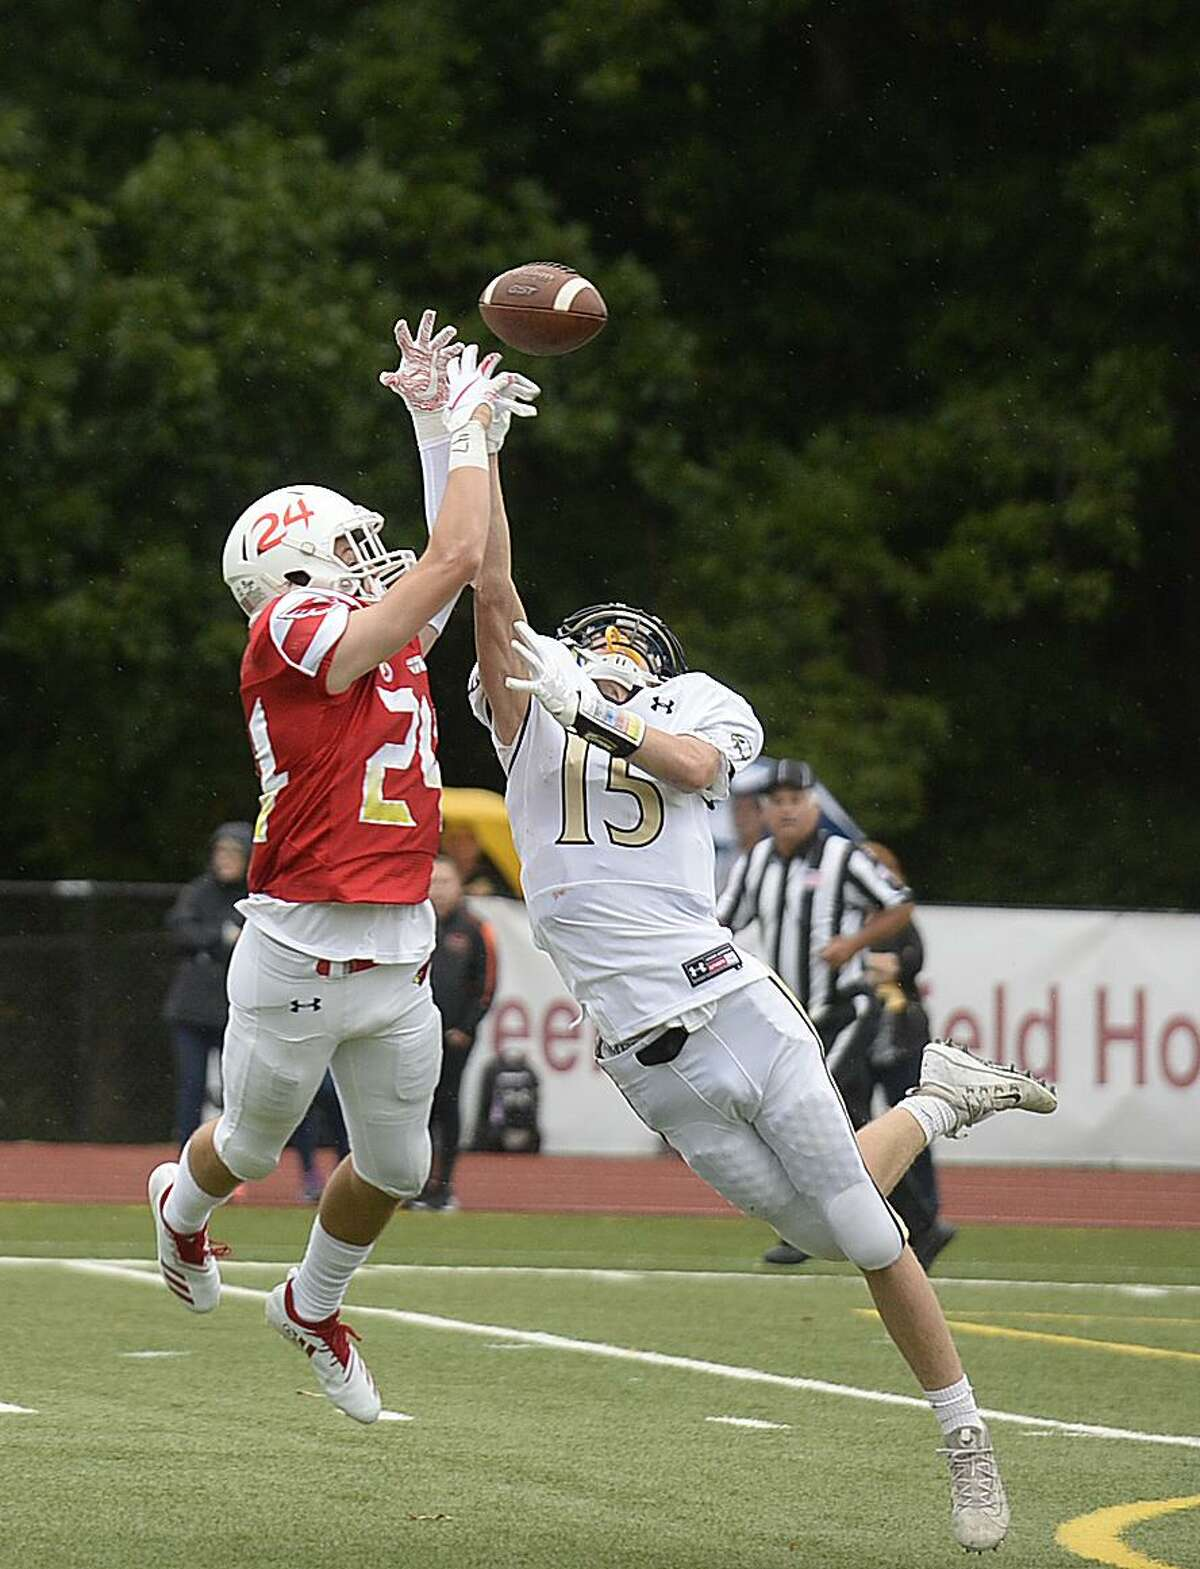 Greenwich's Nick Veronis blocks a pass intended for Trumbull's Kyle Atherton on Sept. 8.